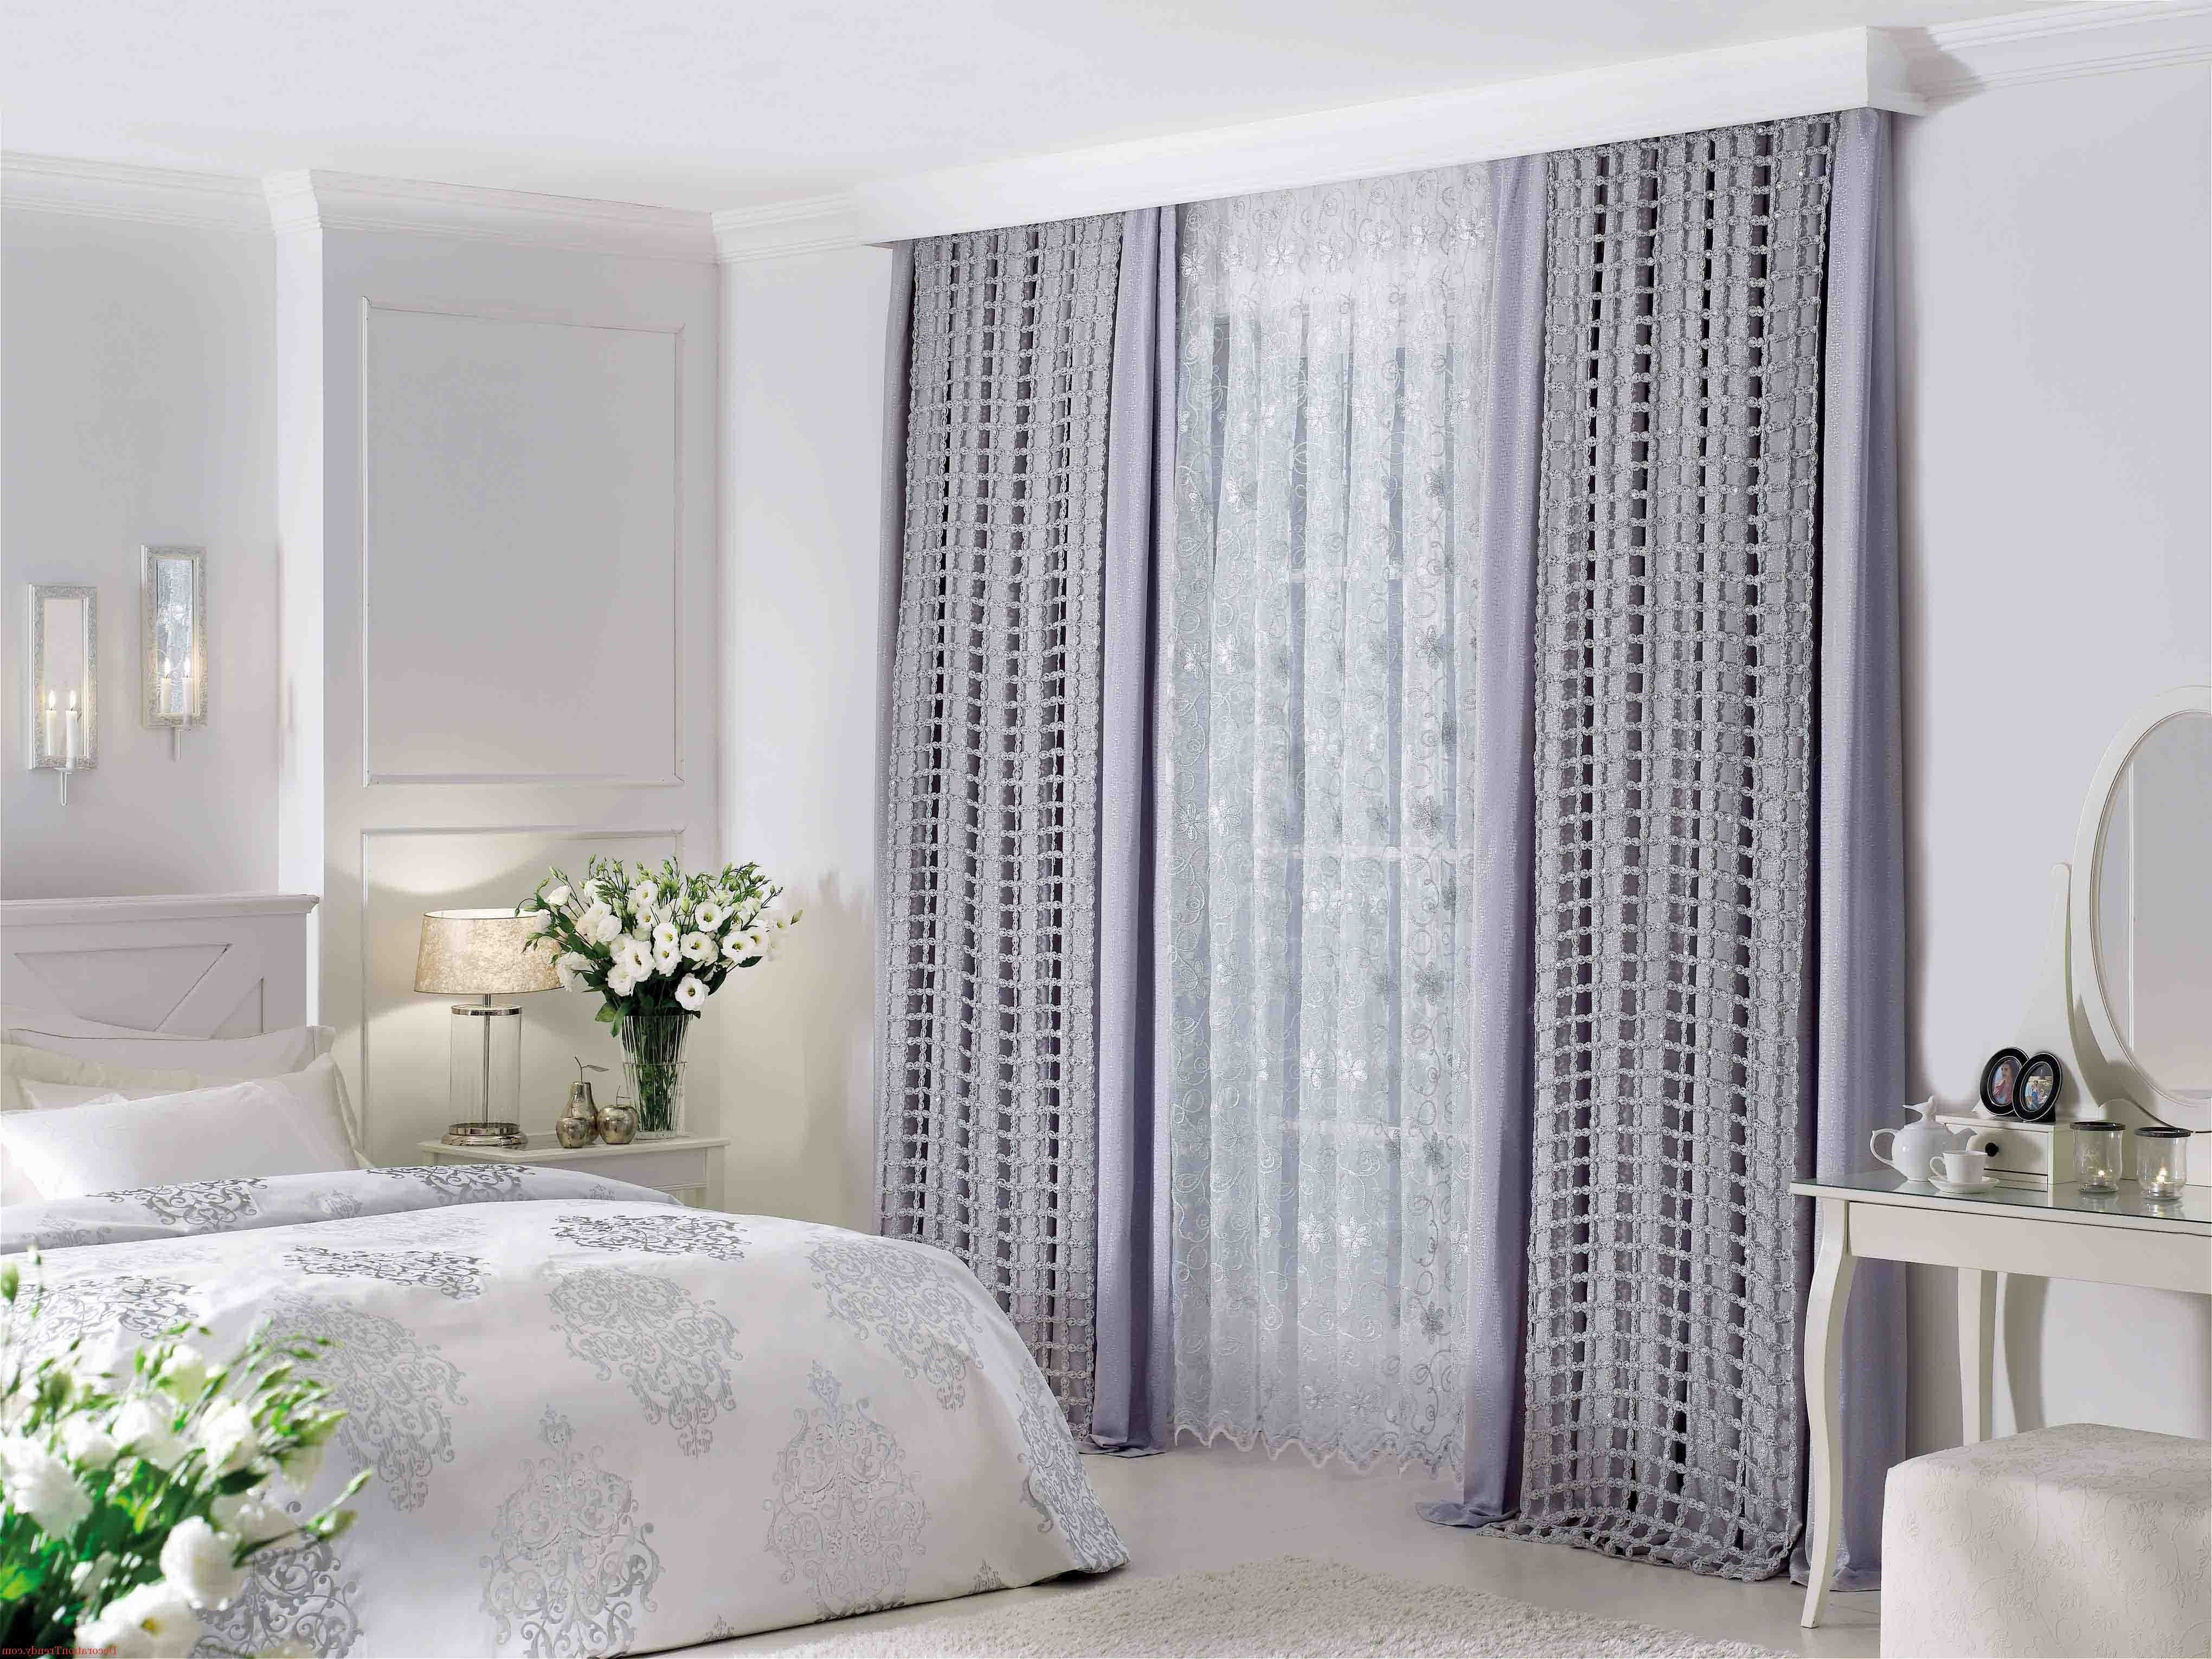 Cute Purple Lace Curtains For Bedroom Decoration (View 17 of 20)